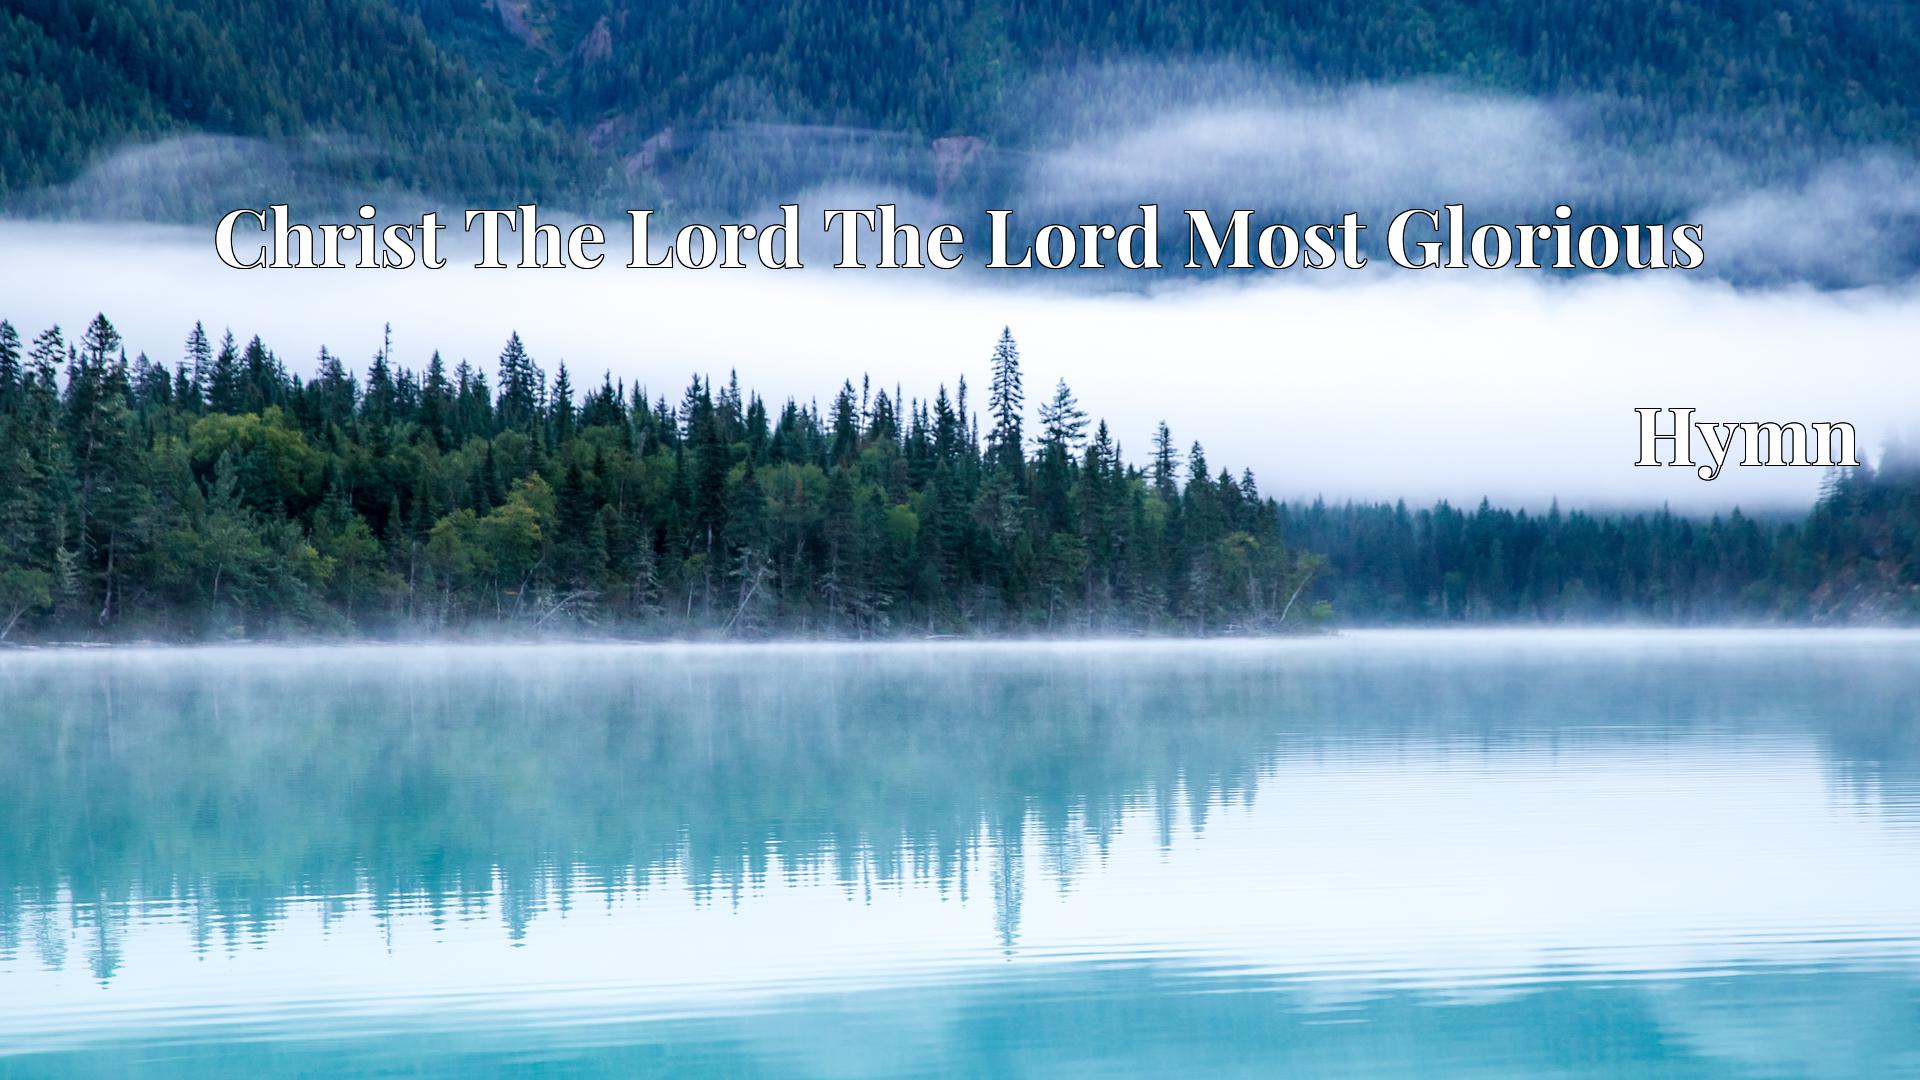 Christ The Lord The Lord Most Glorious - Hymn